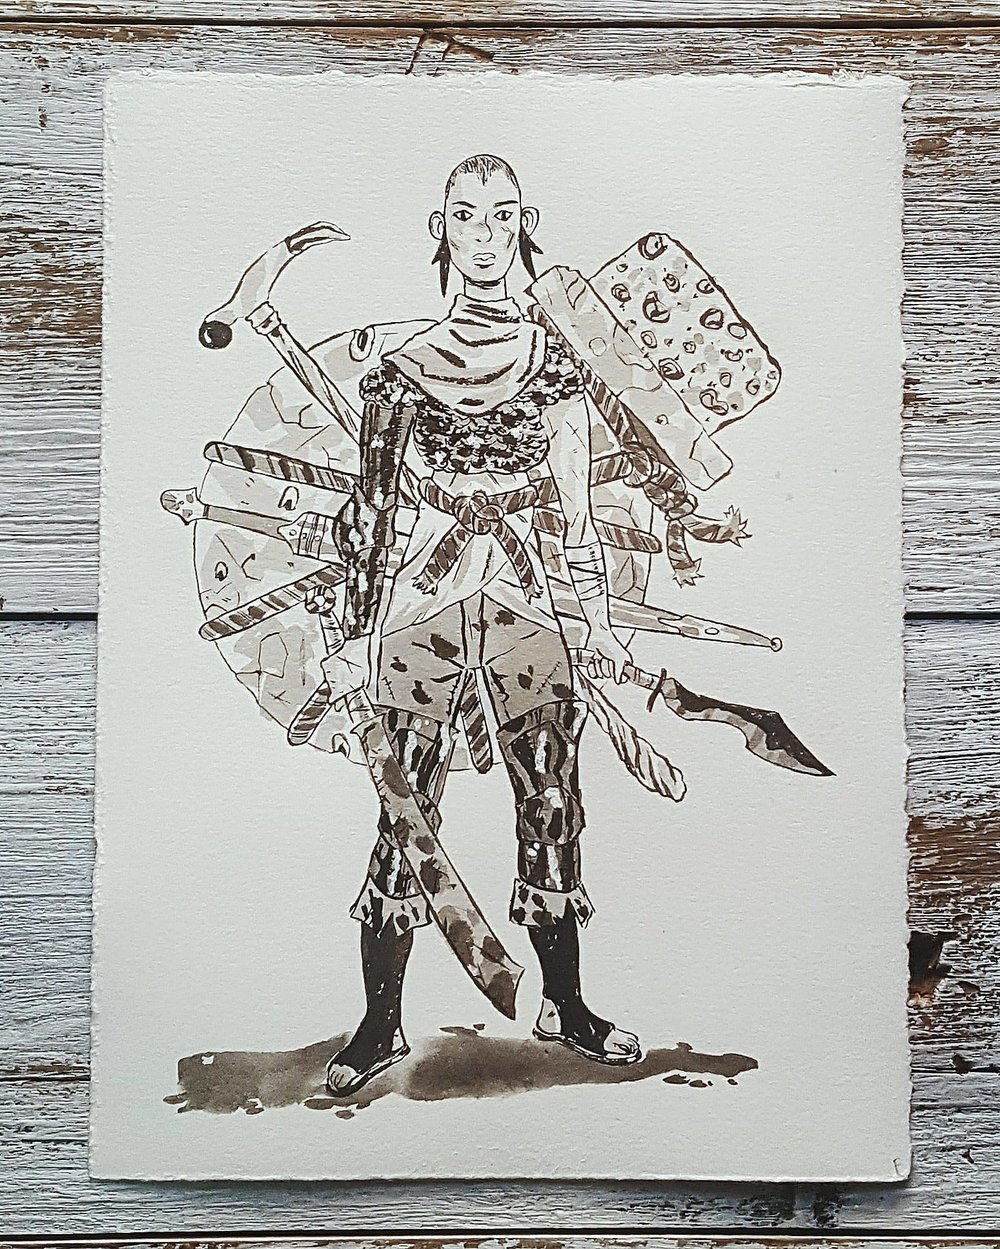 A Knight a Day No. 4, Lera the Rogue - After deserting the army because of its uselessness, she founded a guild of mercenaries, head hunters, and rangers whose purpose is to track and kill the parties of pirates and raiders who terrorize the countryside.